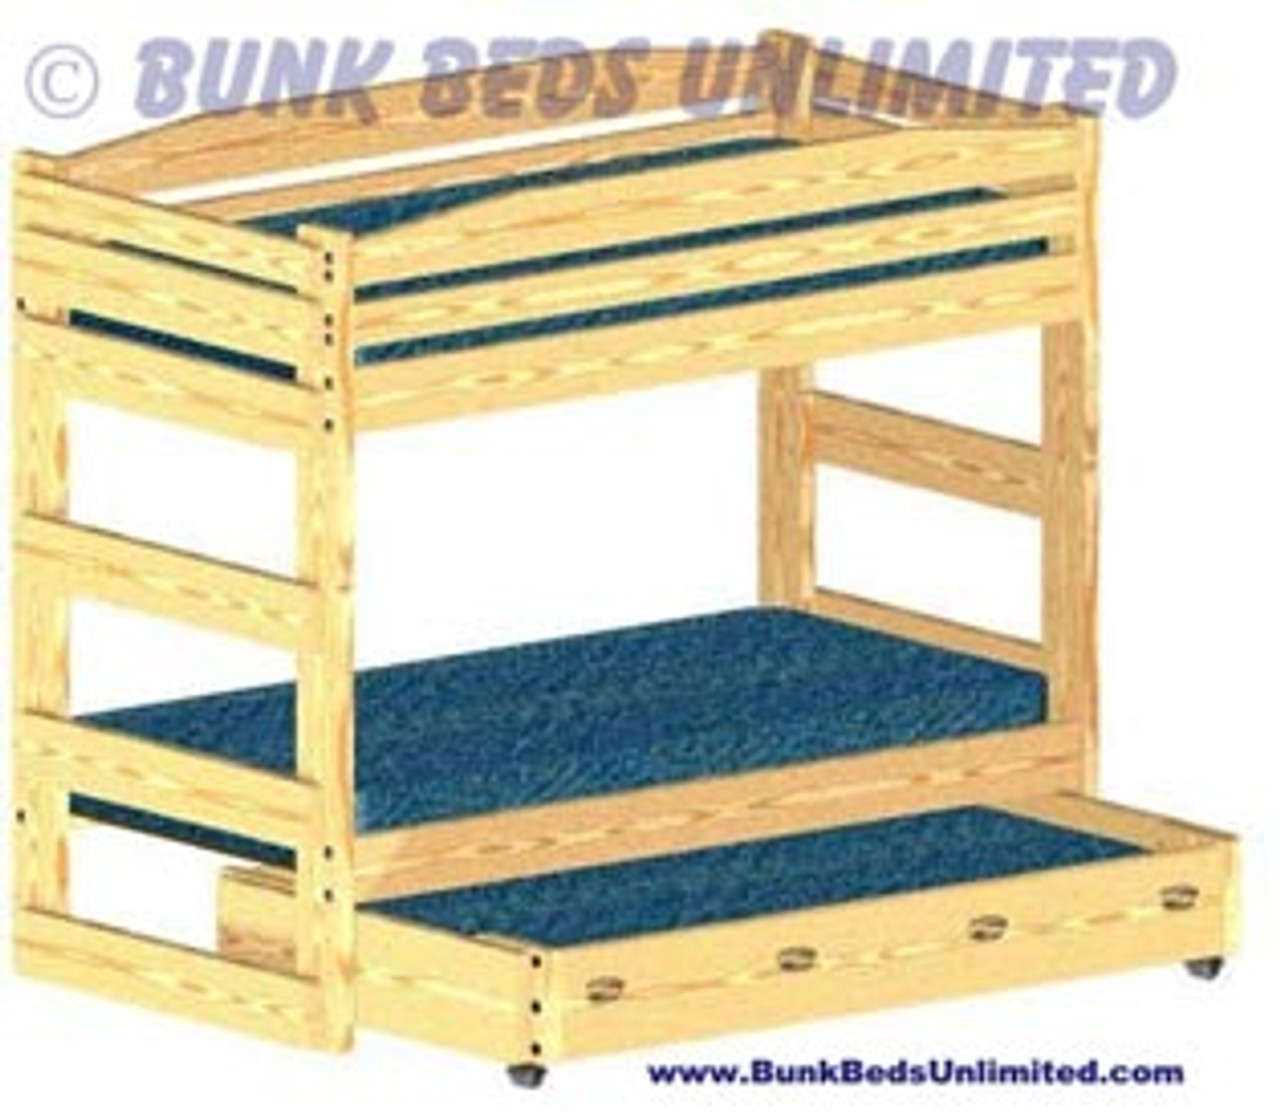 Plans To Build A Bunk Bed That Is A Stackable Twin With Trundle Bed